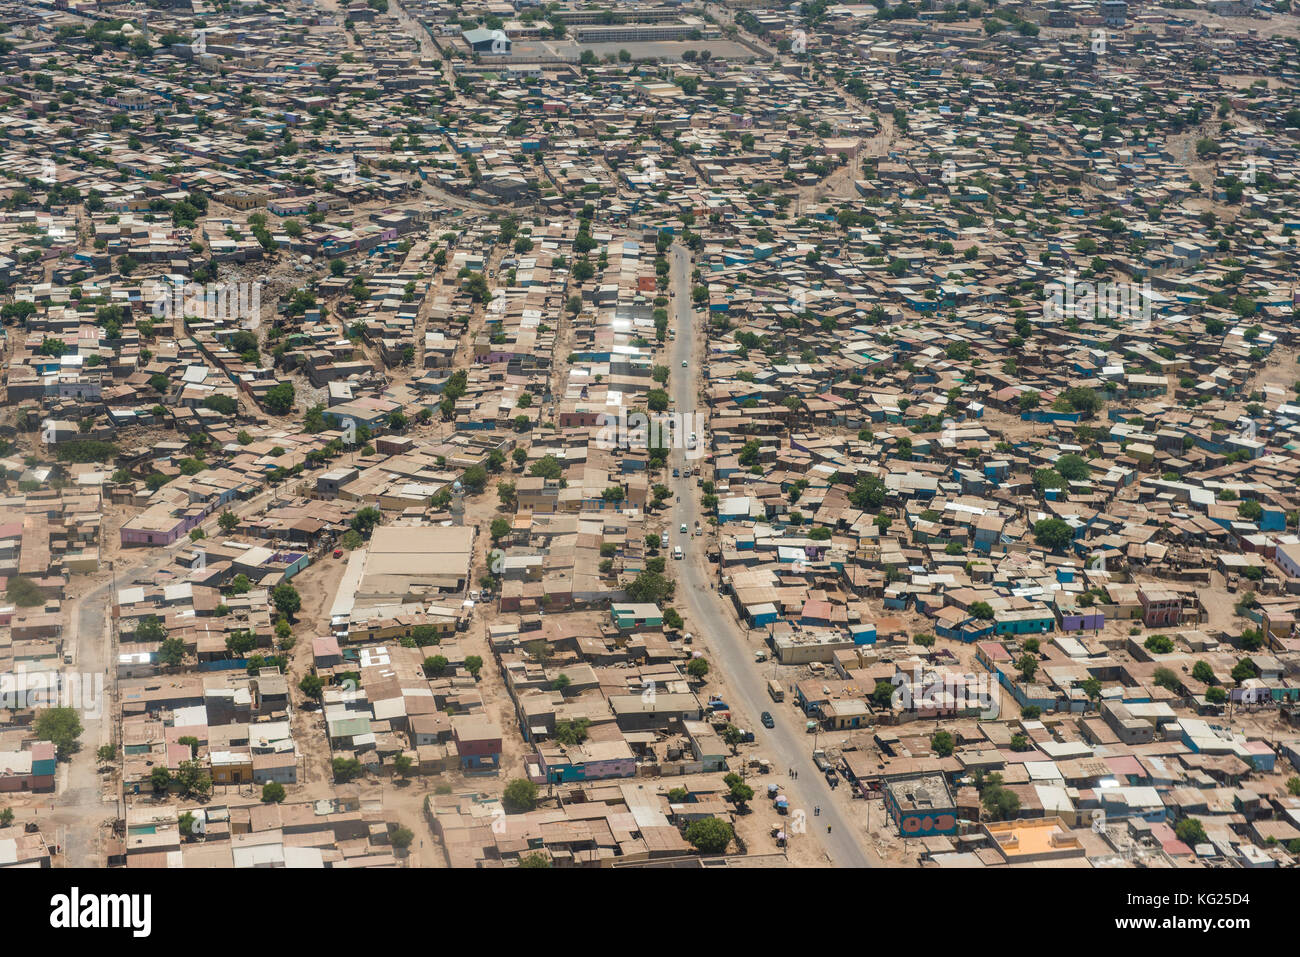 Aerial of Djibouti on the Horn of Africa, Africa Stock Photo